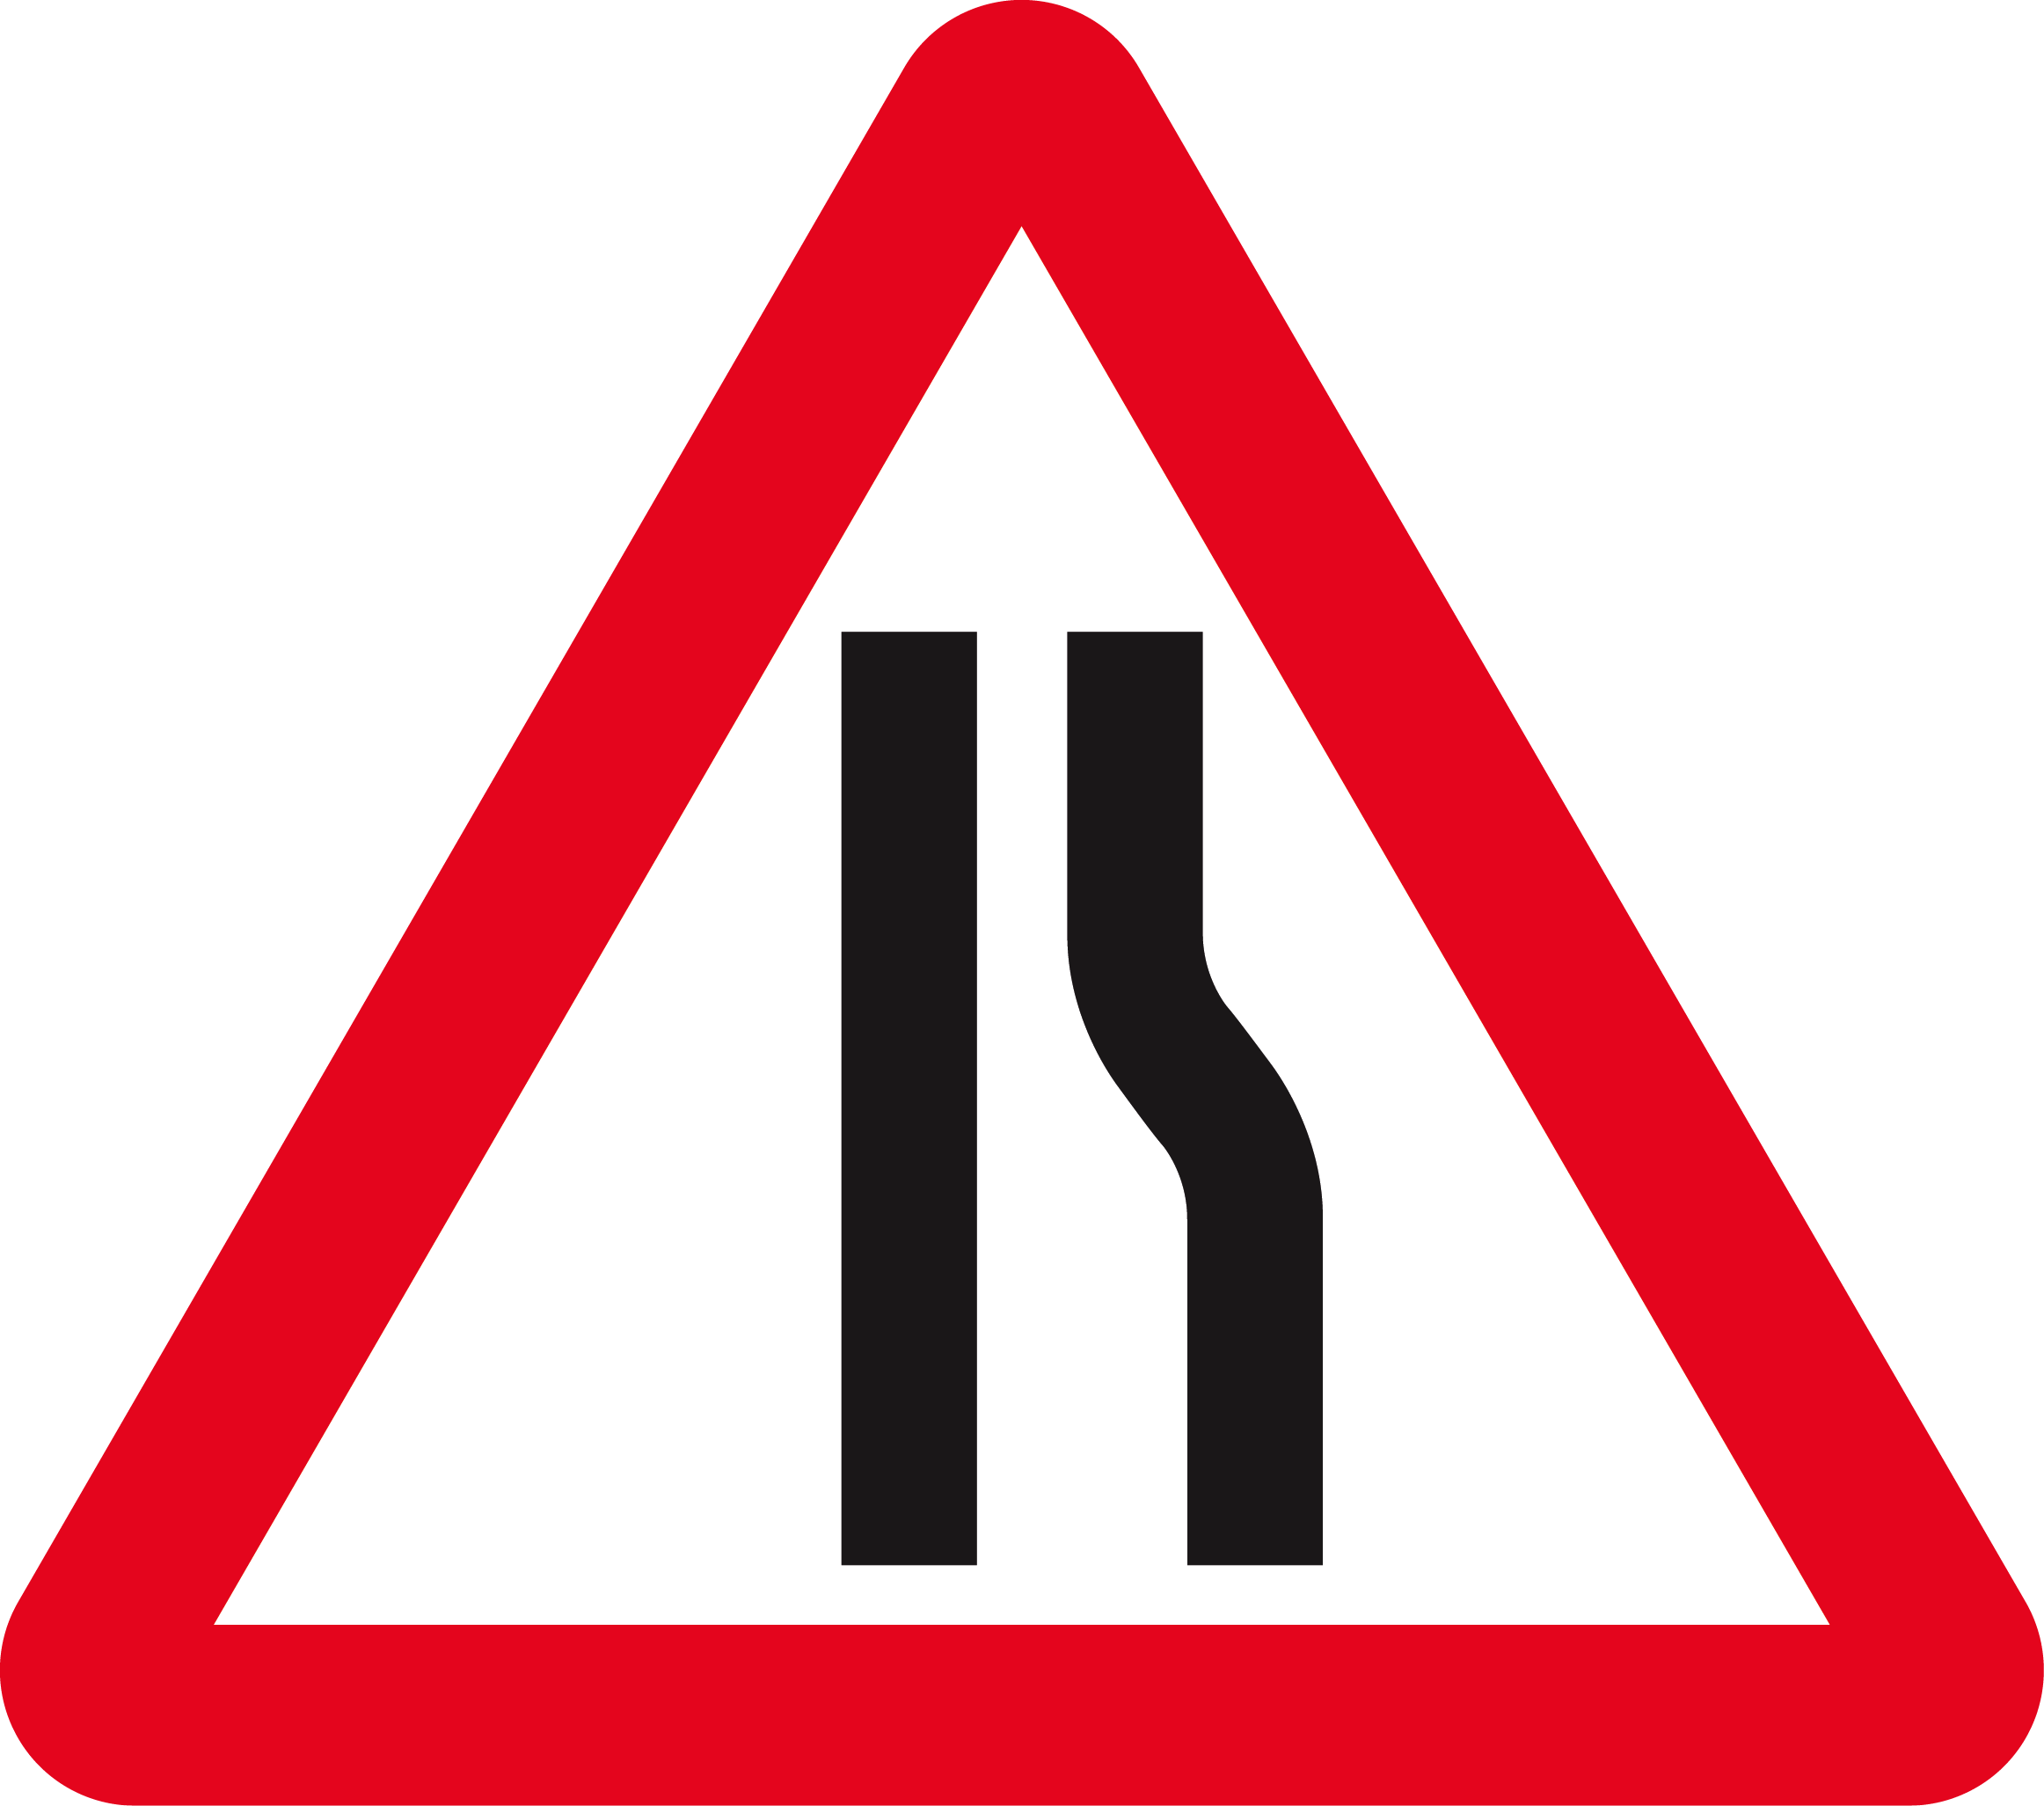 Warning Road Sign File:Singapore Road Si...